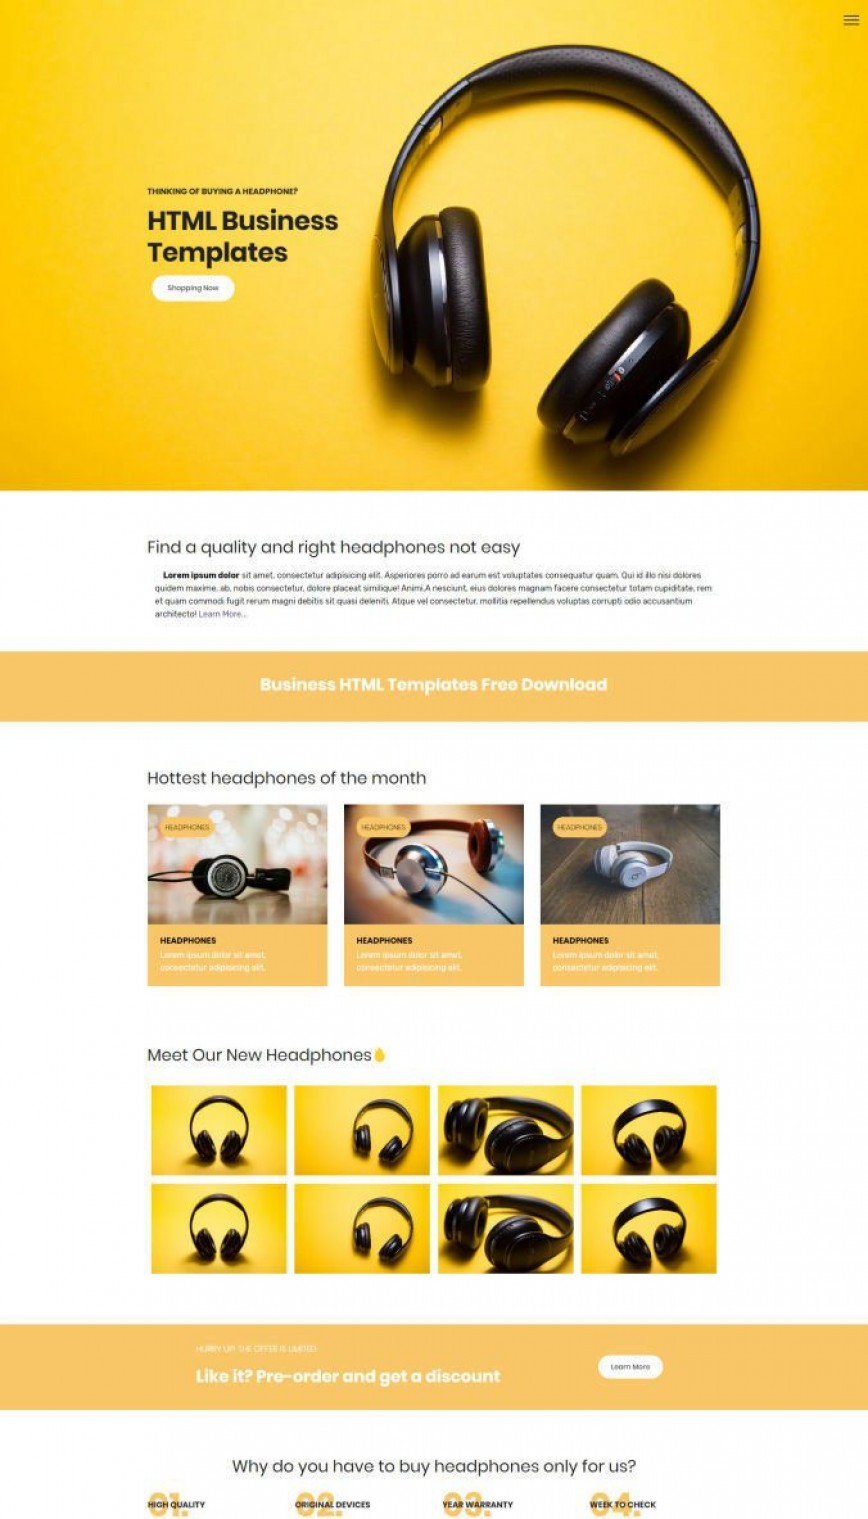 003 Fascinating Simple Web Page Template Free Download Concept  One Website Html With Cs 5